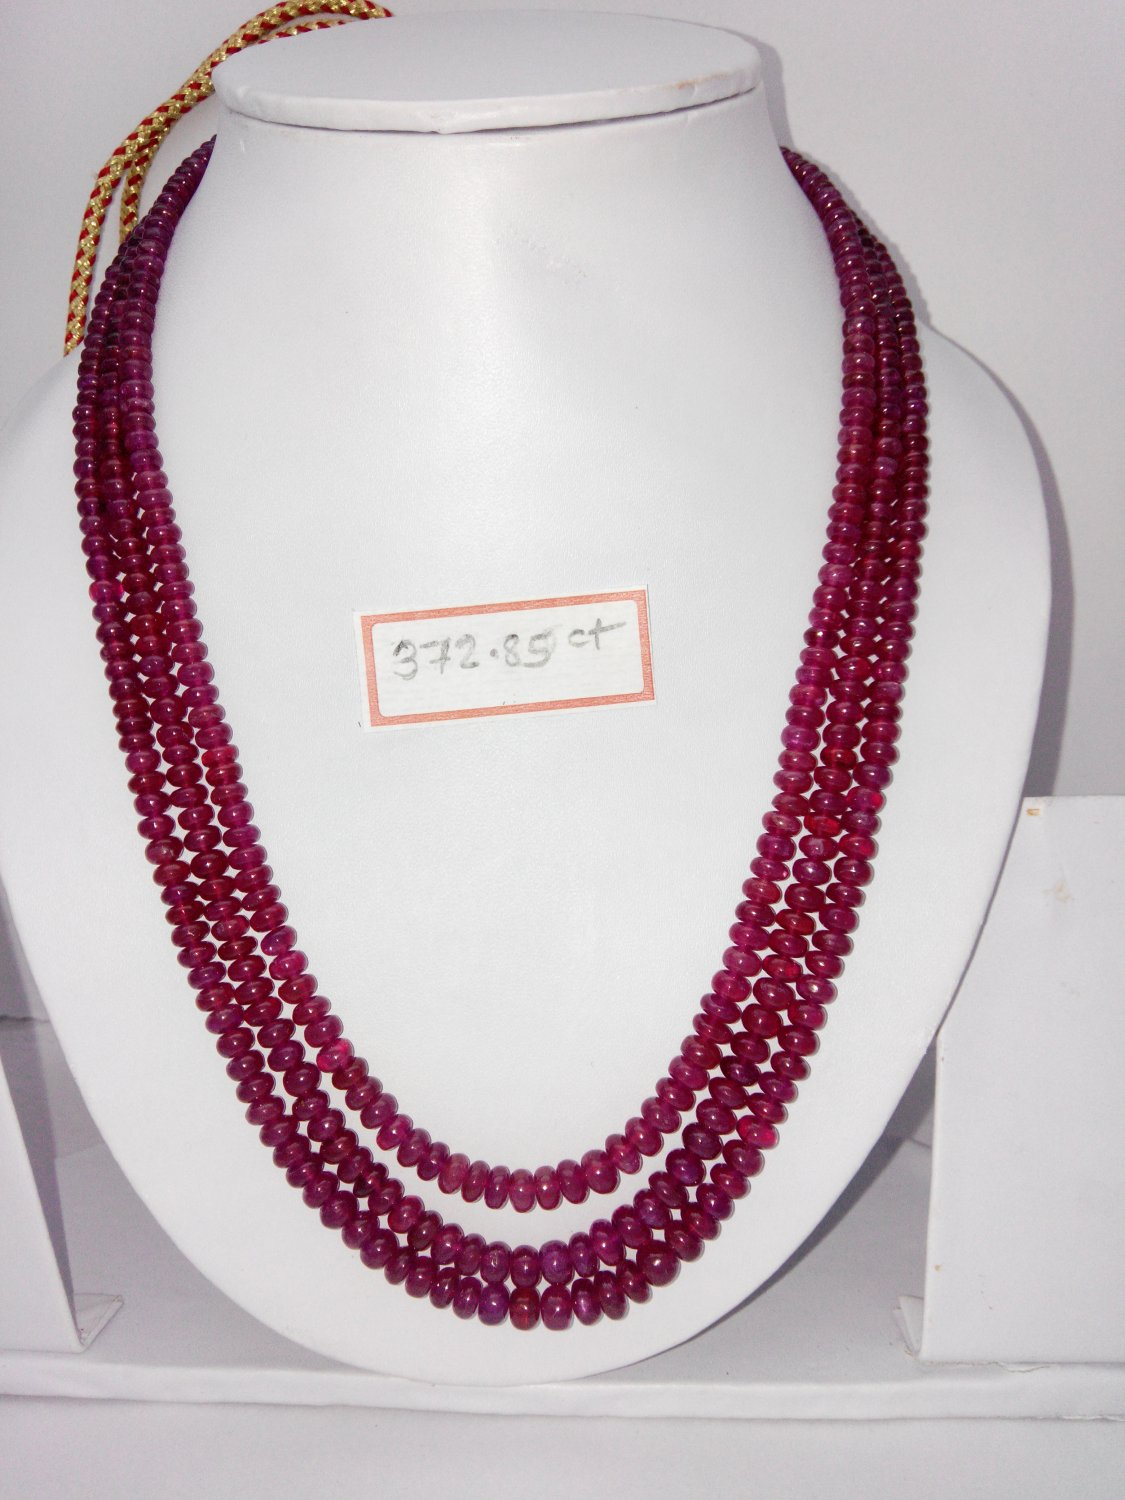 Fissure Filled Ruby necklace of 372.85 cts Fancy Round Beads plane Polish